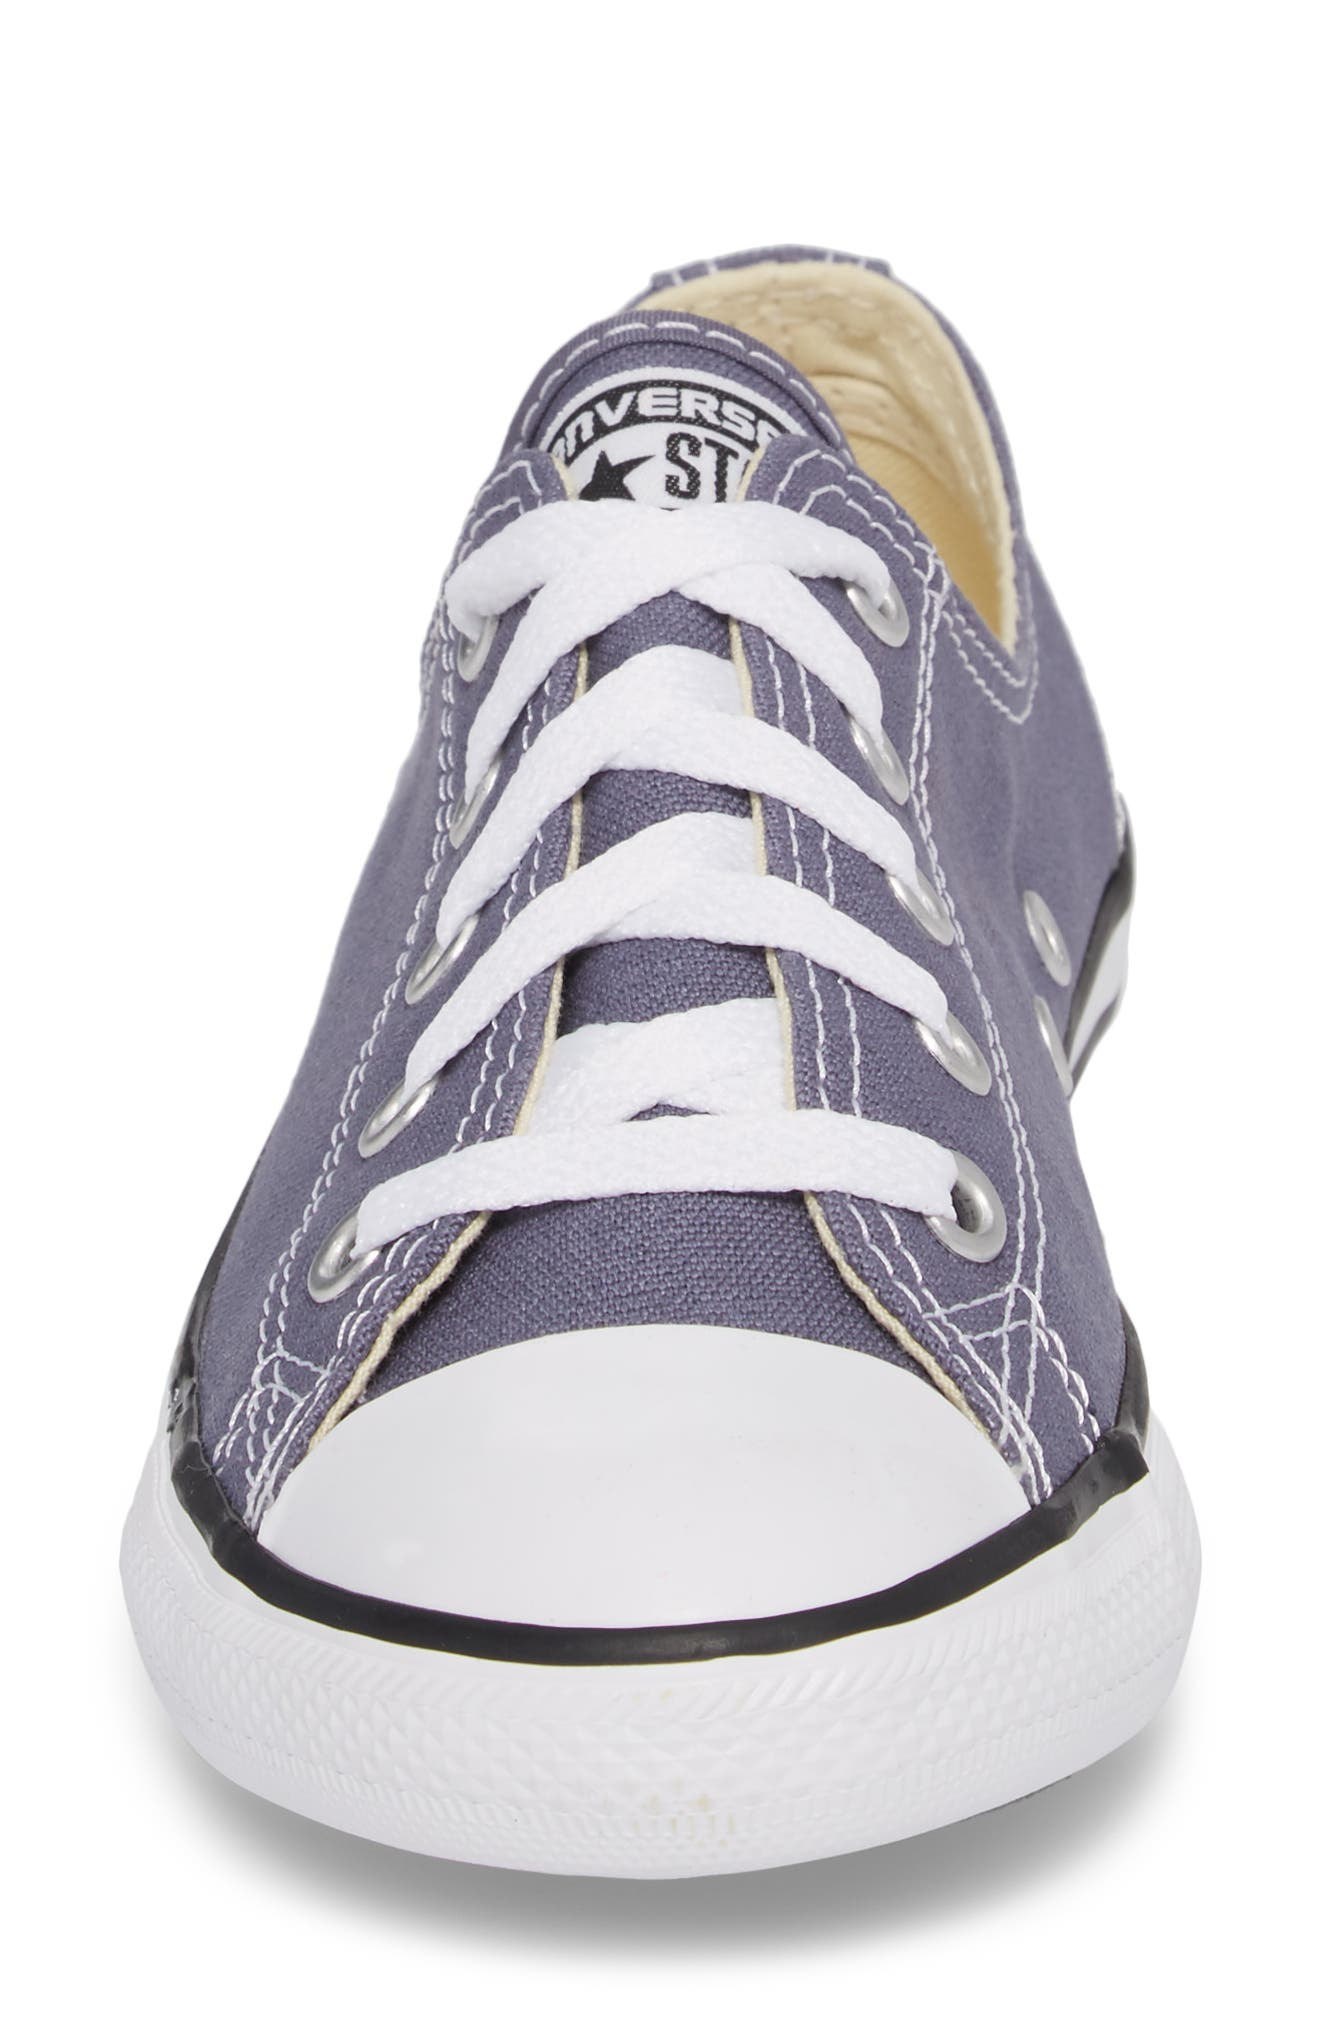 Chuck Taylor<sup>®</sup> All Star<sup>®</sup> Dainty Ox Low Top Sneaker,                             Alternate thumbnail 4, color,                             Light Carbon